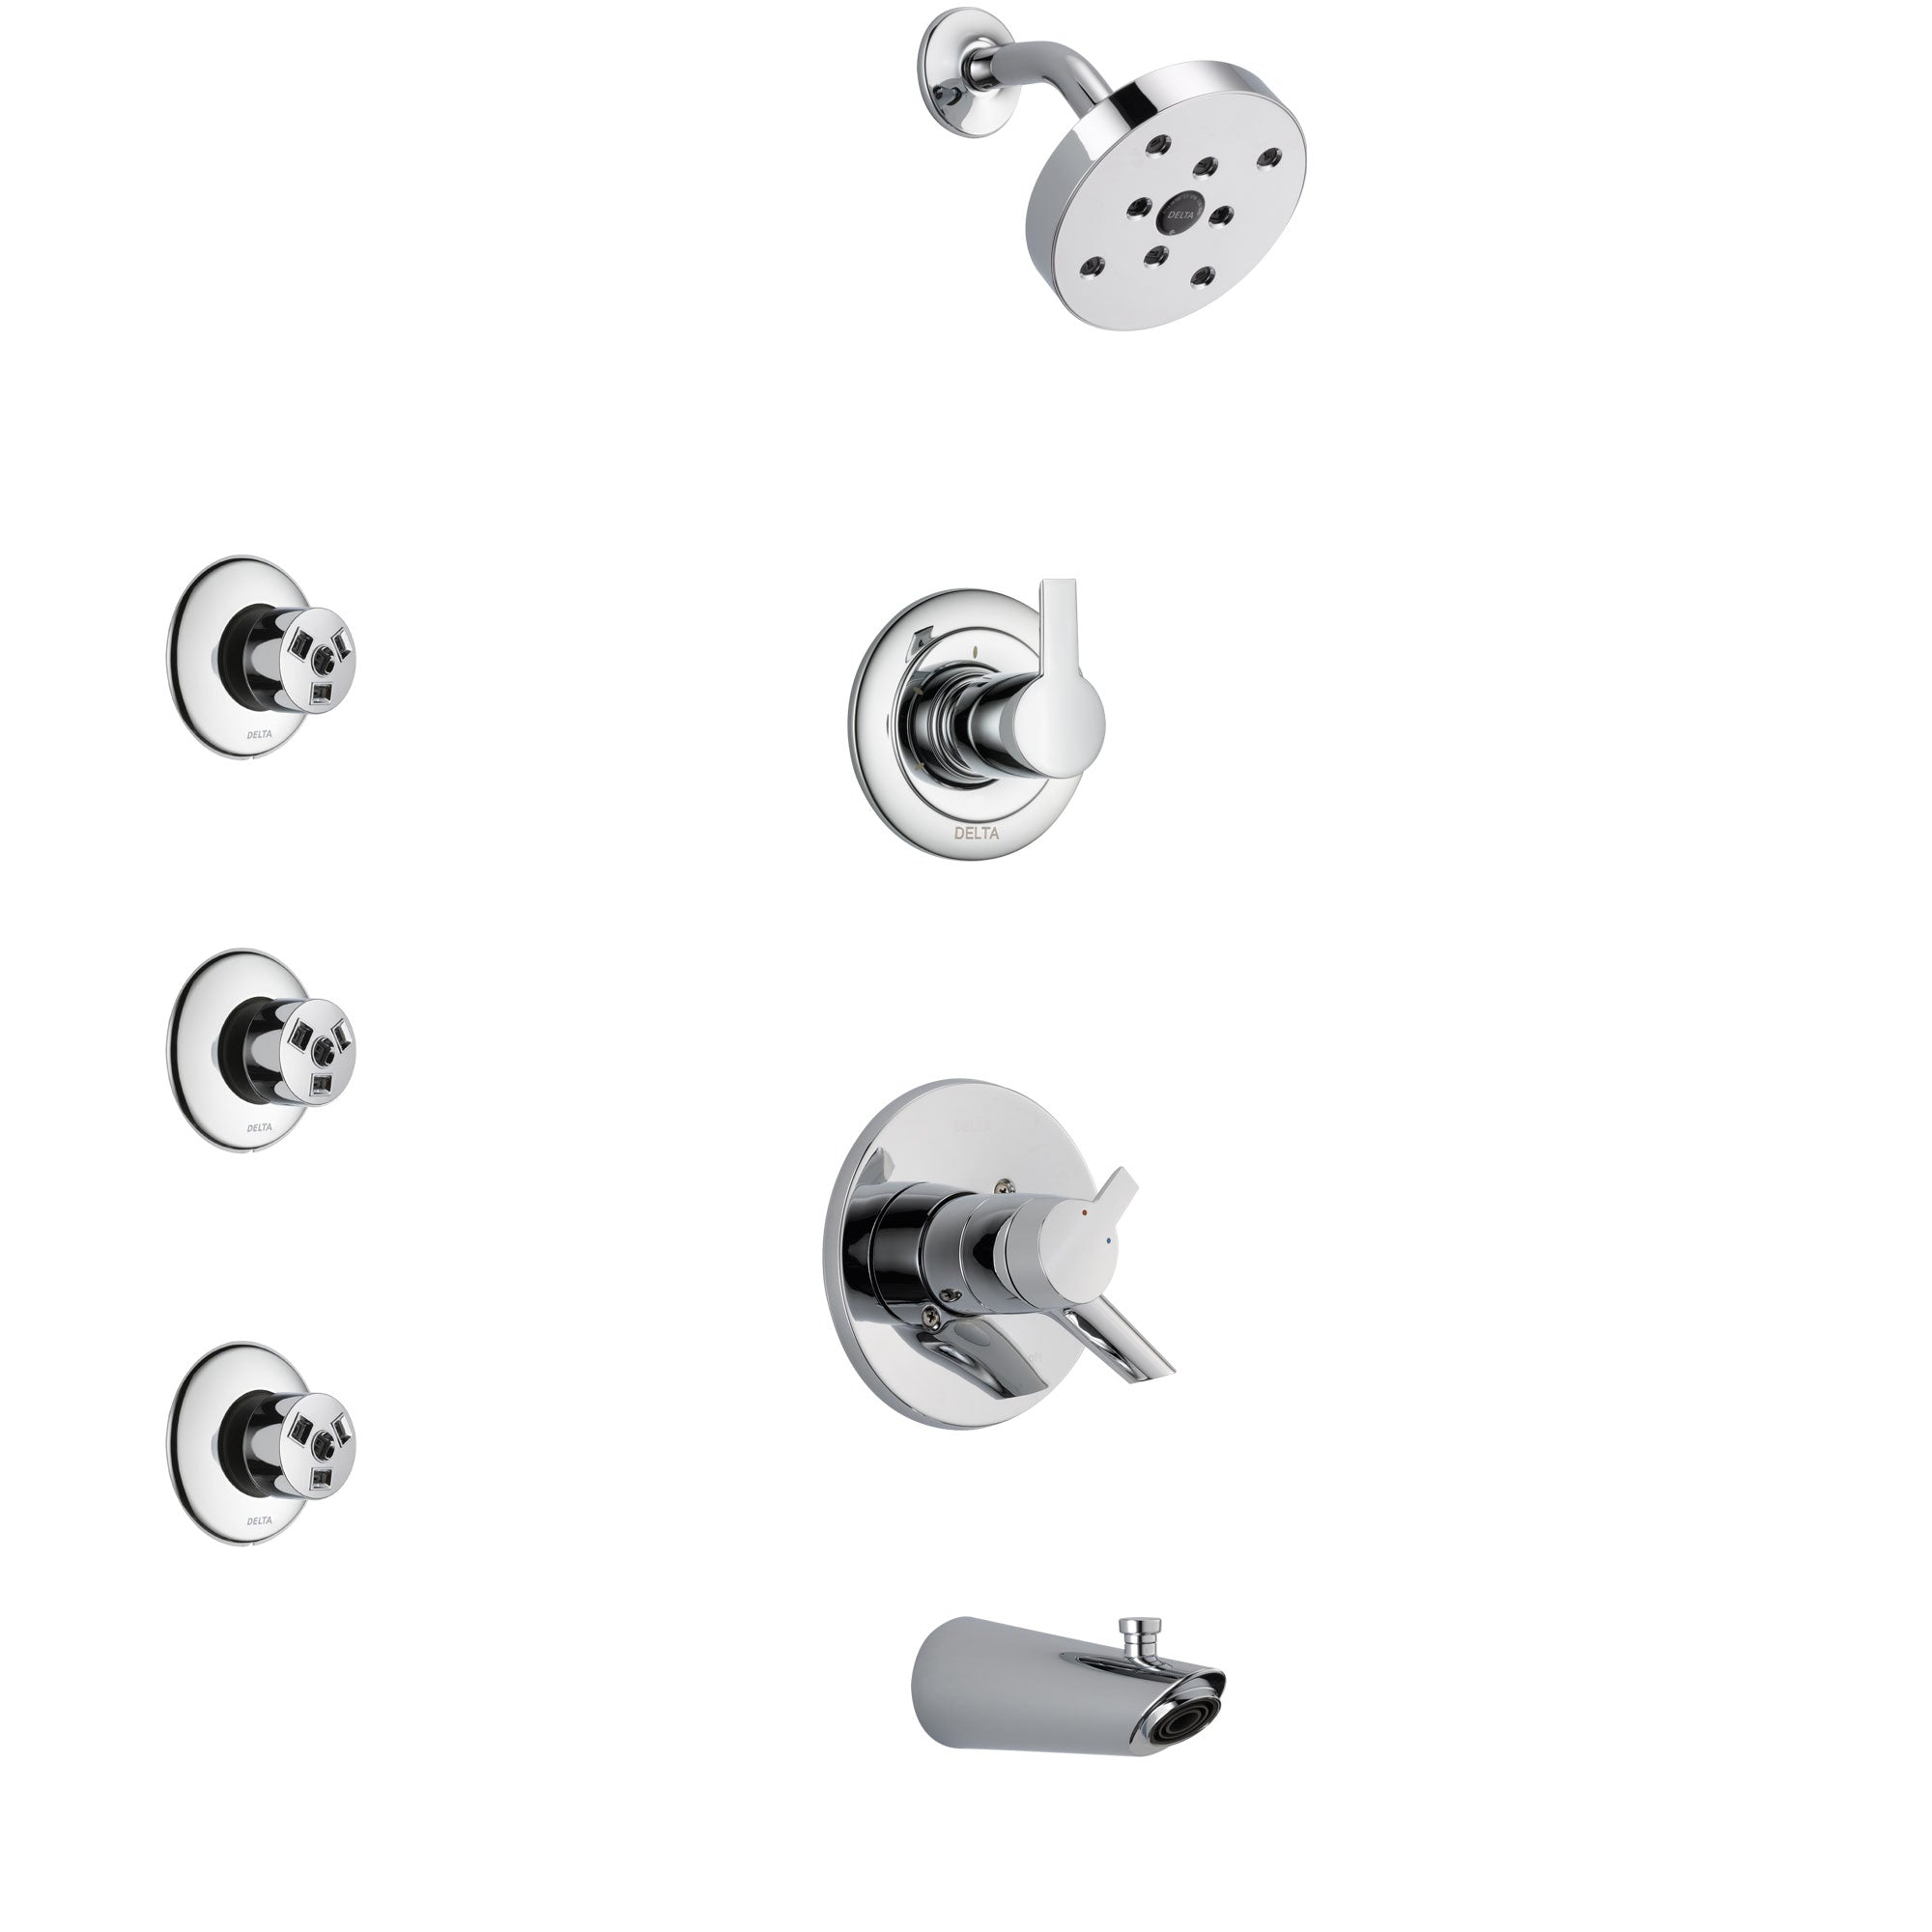 Delta Compel Chrome Finish Tub and Shower System with Dual Control Handle, 3-Setting Diverter, Showerhead, and 3 Body Sprays SS174612